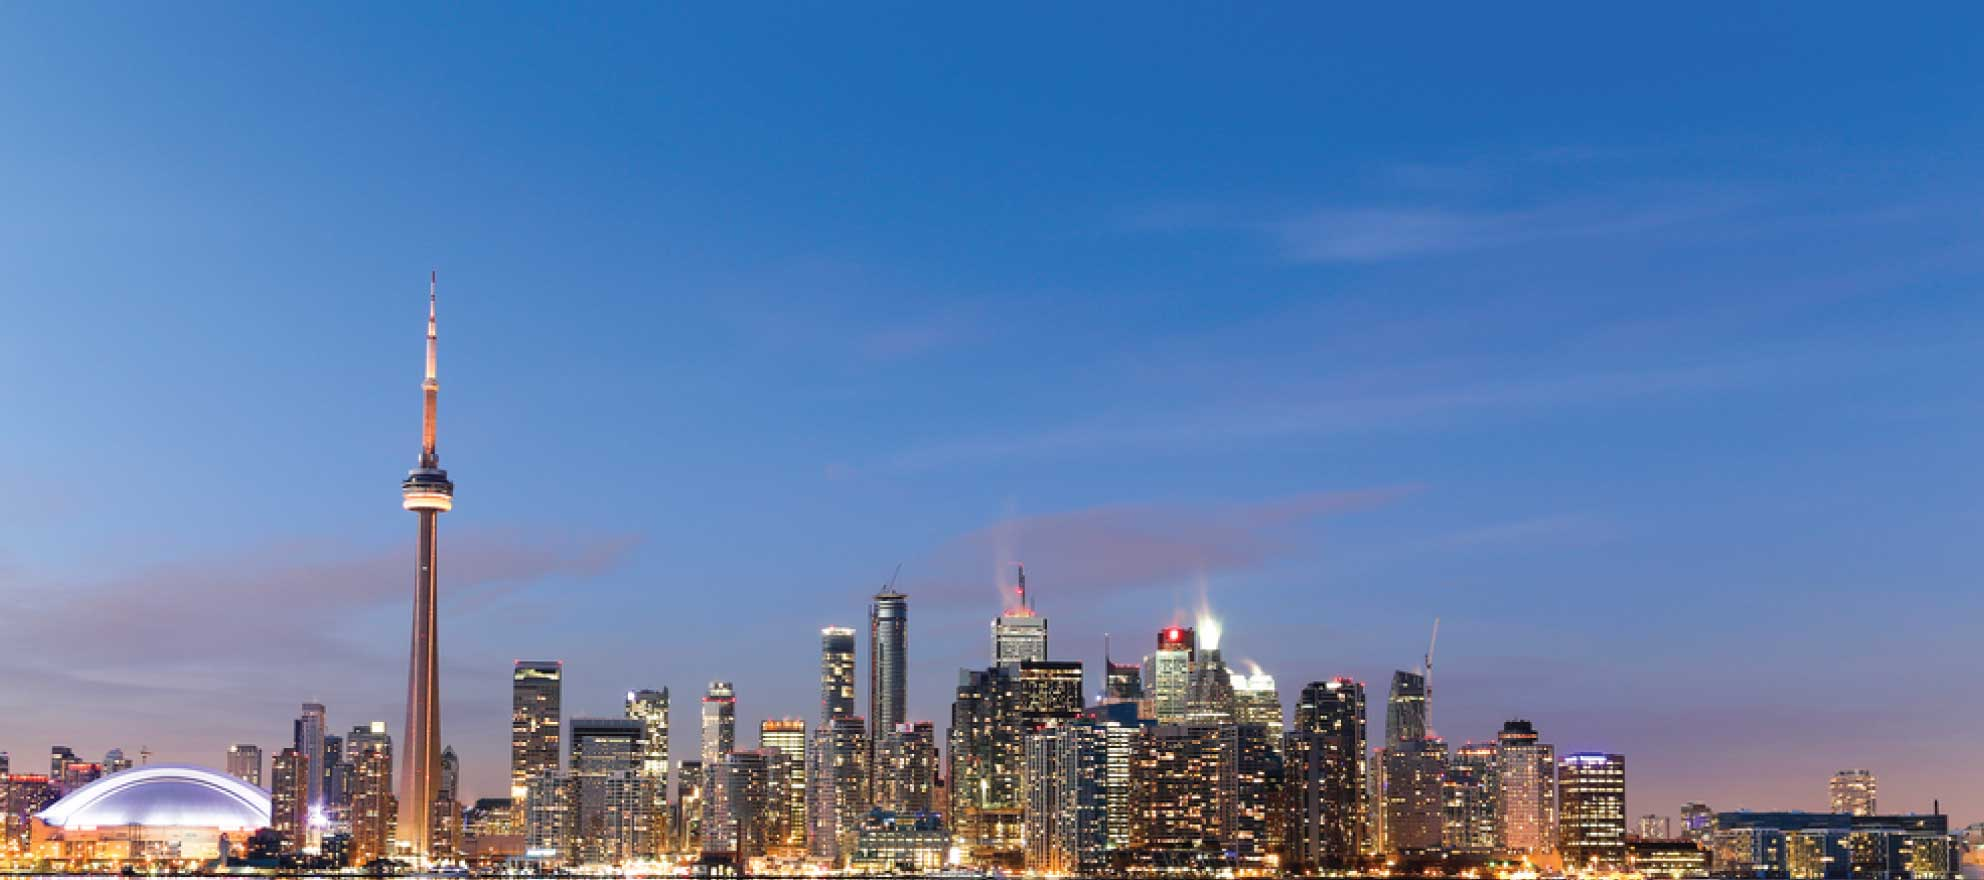 US multifamily investing: Canadian interest drops while Chinese interest rises